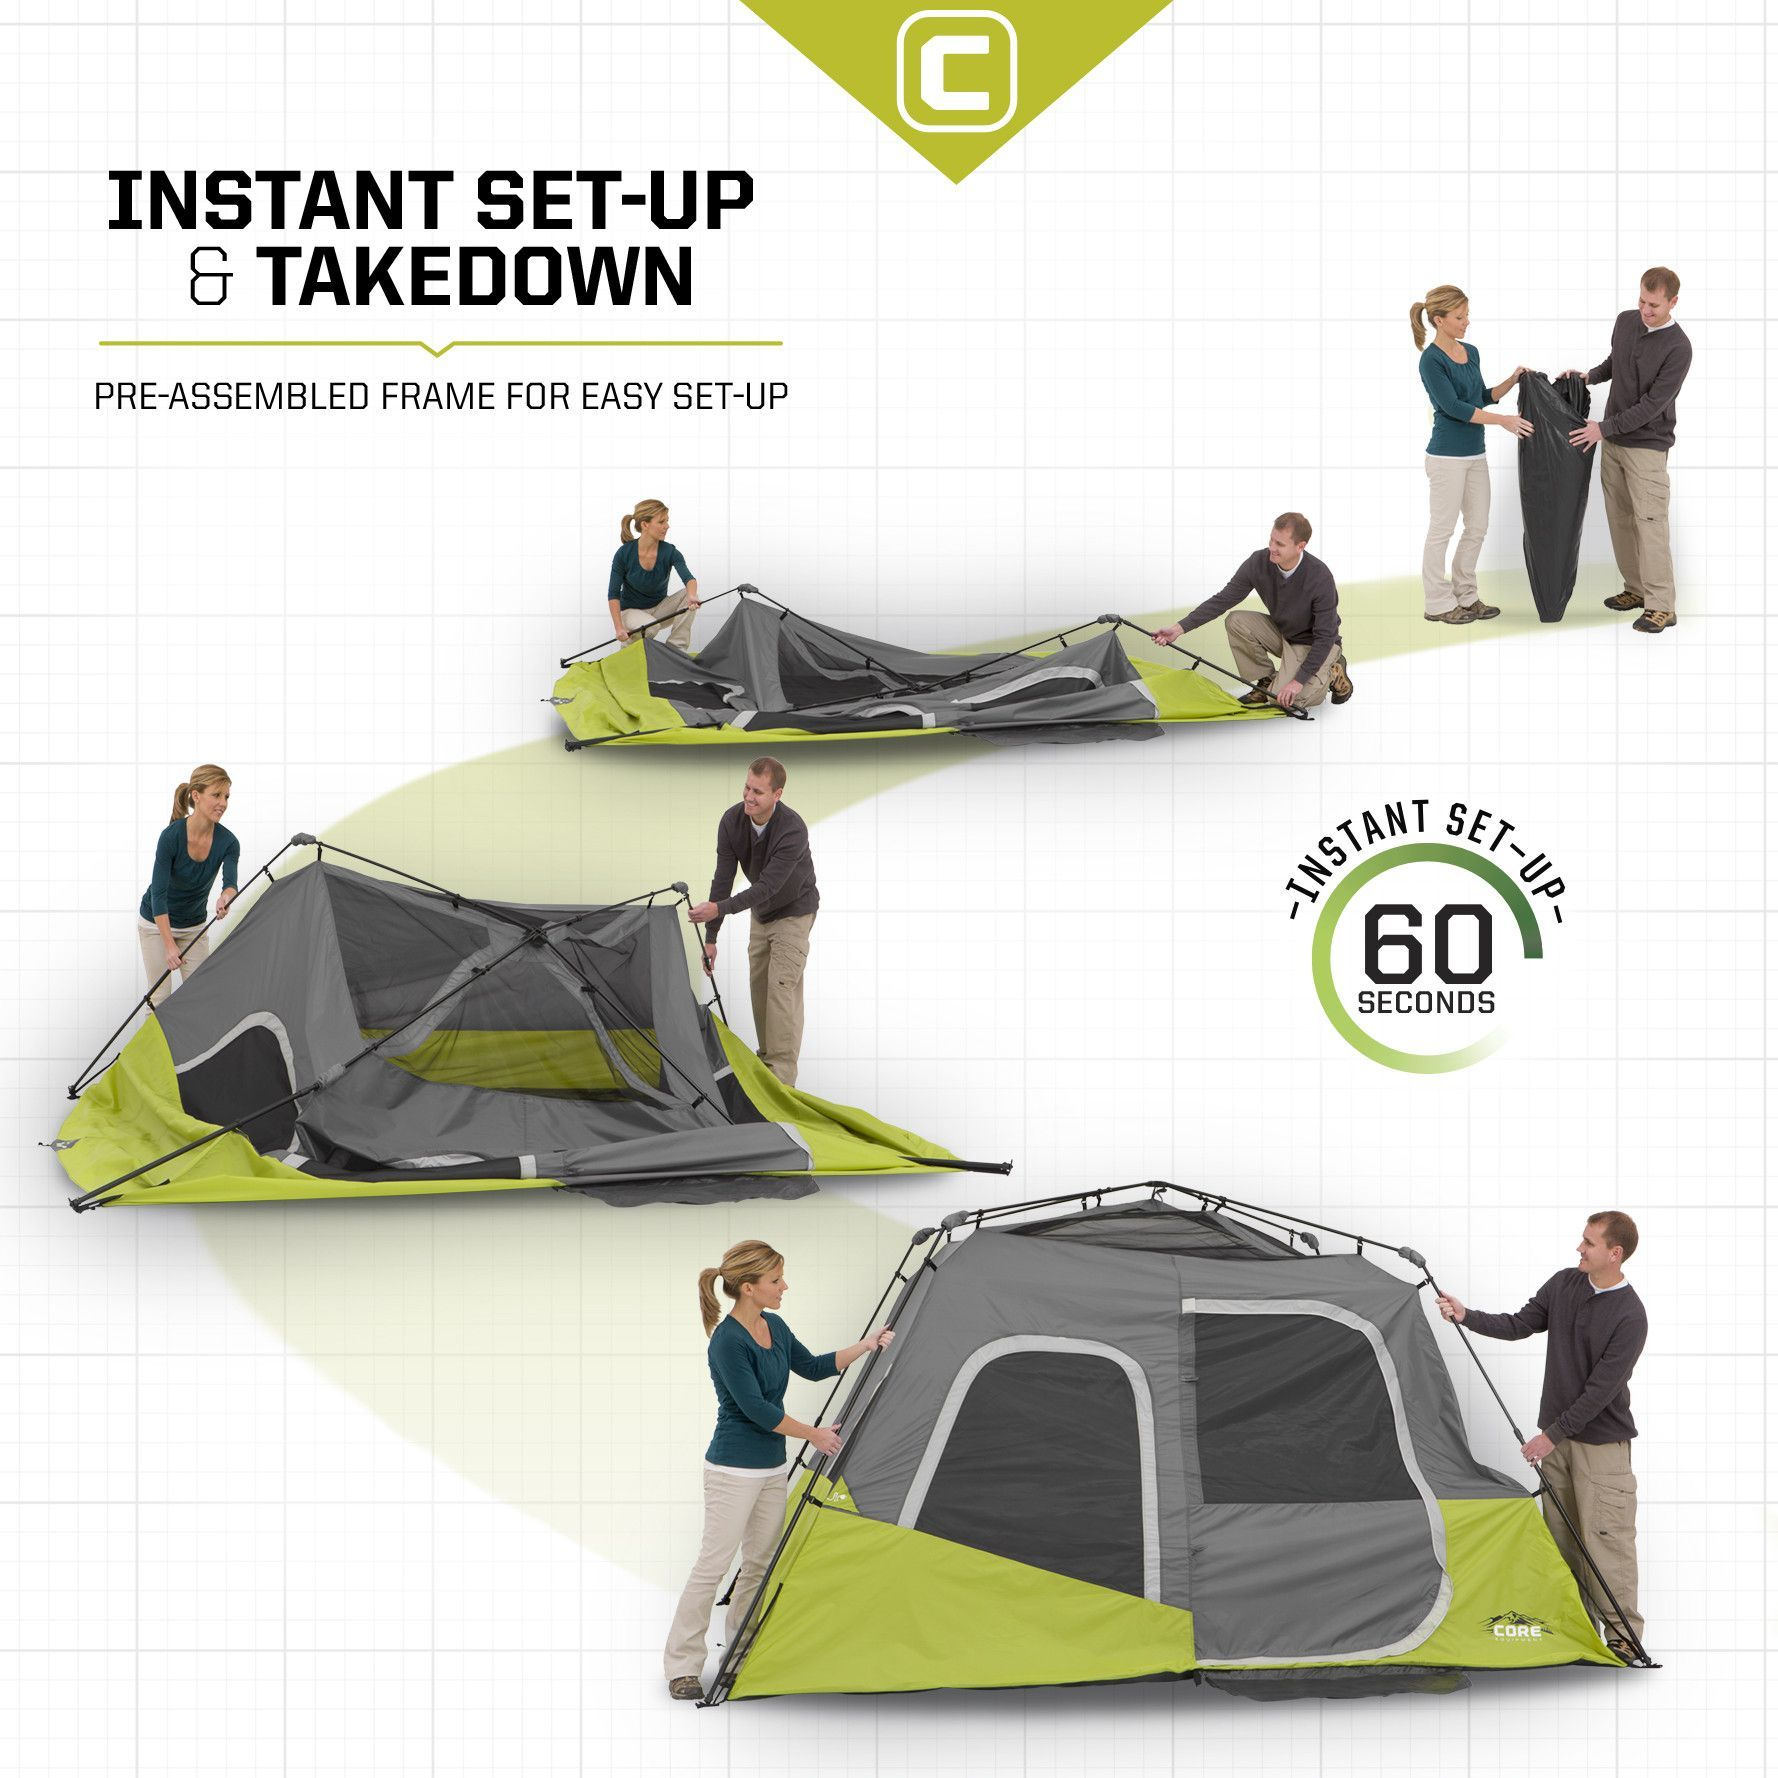 6 Person Instant Cabin Tent 11u0027 ...  sc 1 st  Pinterest & 6 Person Instant Cabin Tent 11u0027 x 9u0027 | Cabin tent Tents and Camping